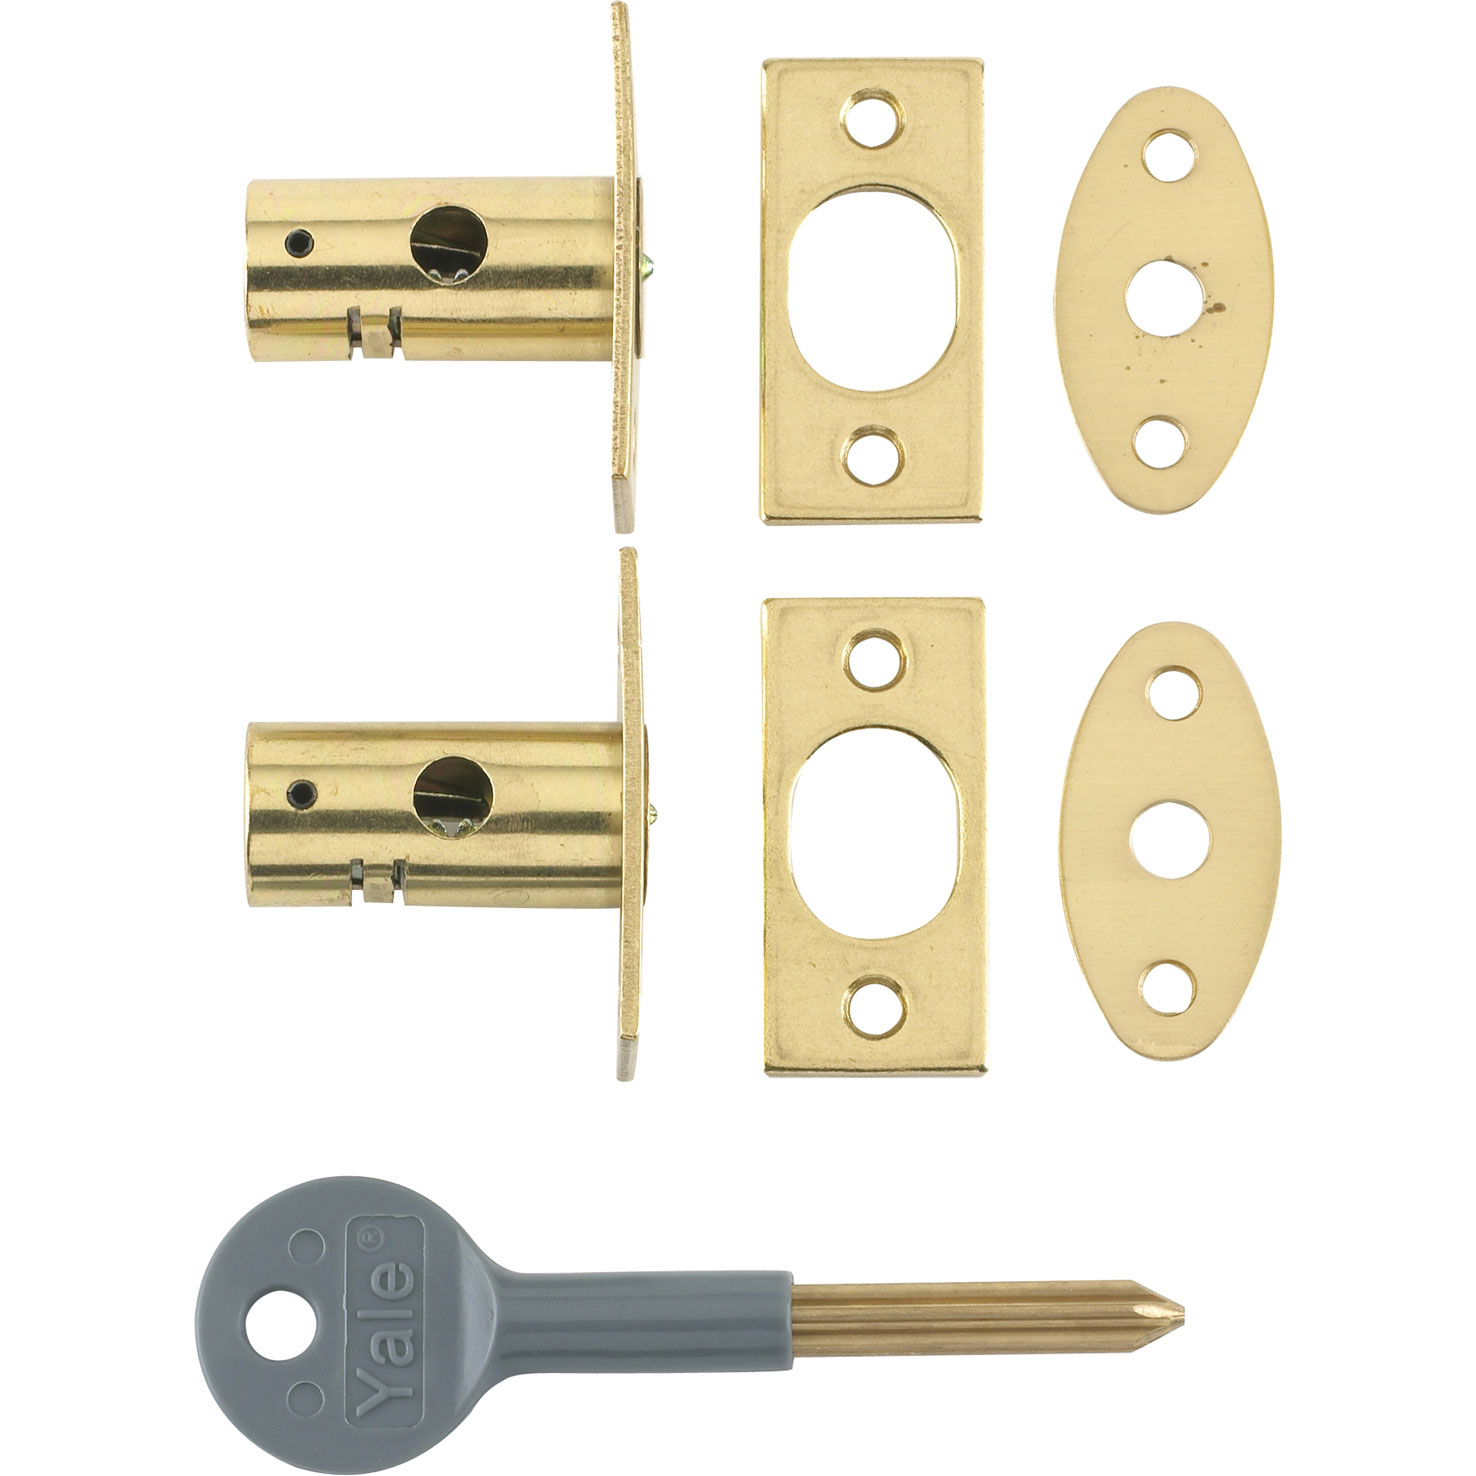 8001 Security Bolts Brass Finish Pack of 2 Vi